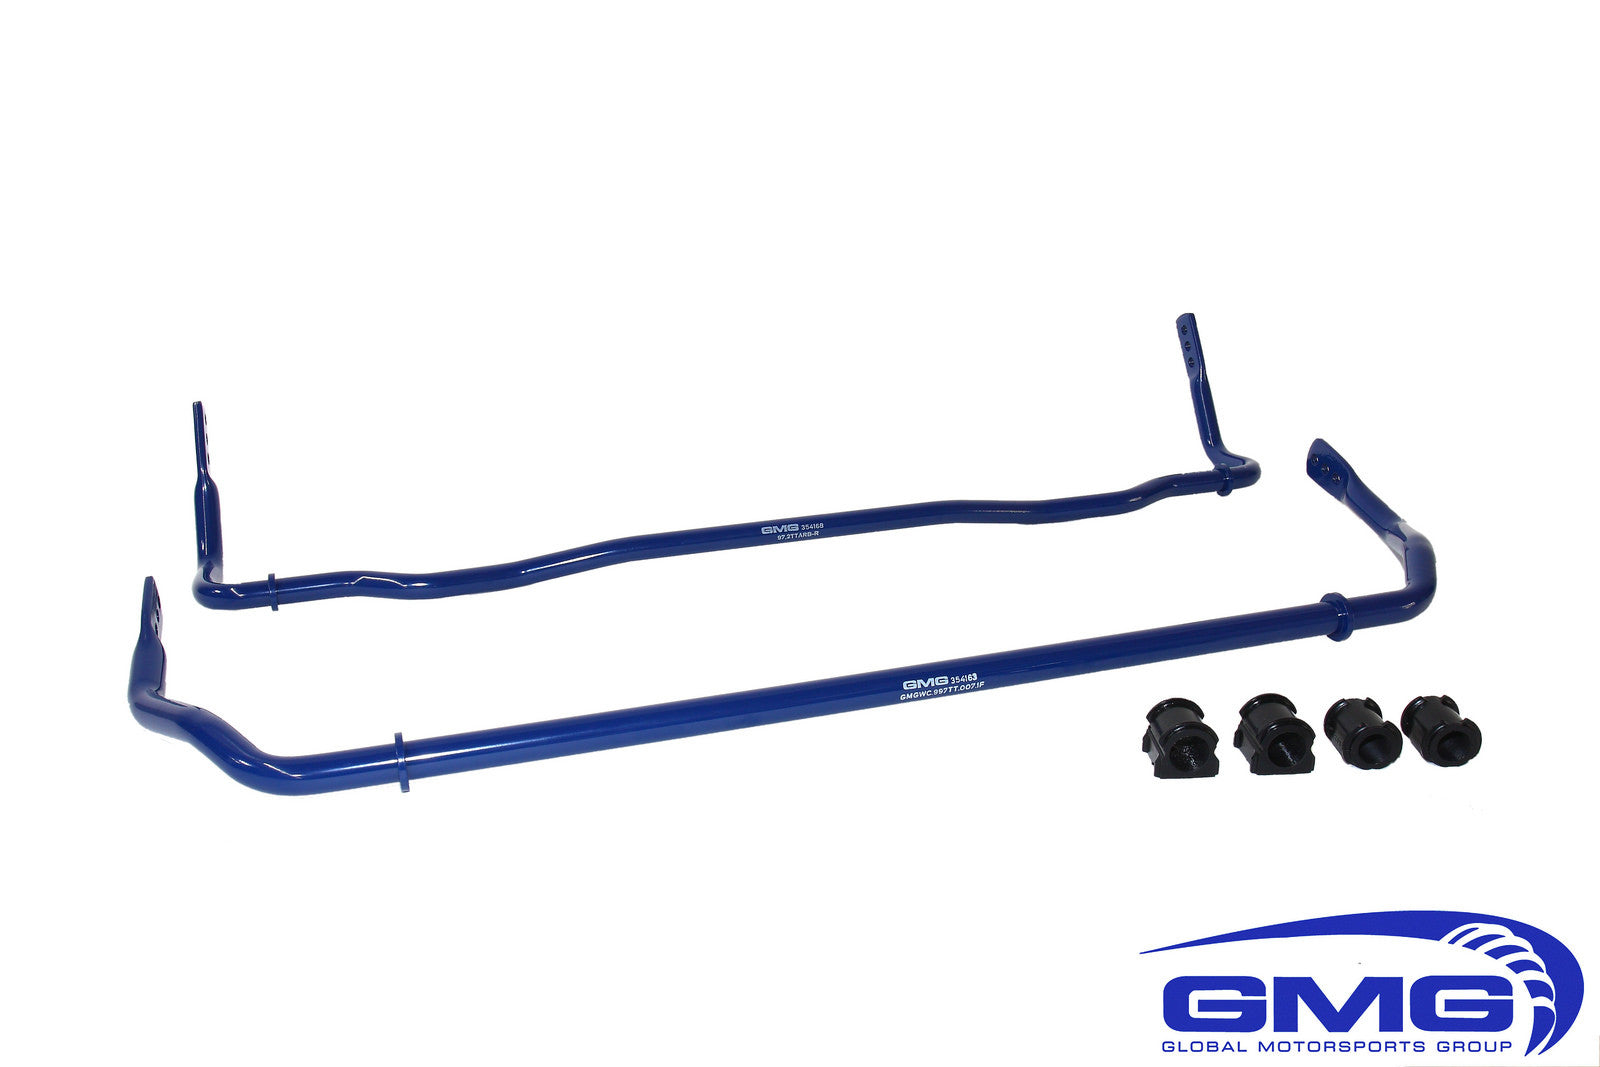 997.1 Turbo GMG WC Swaybar Kit